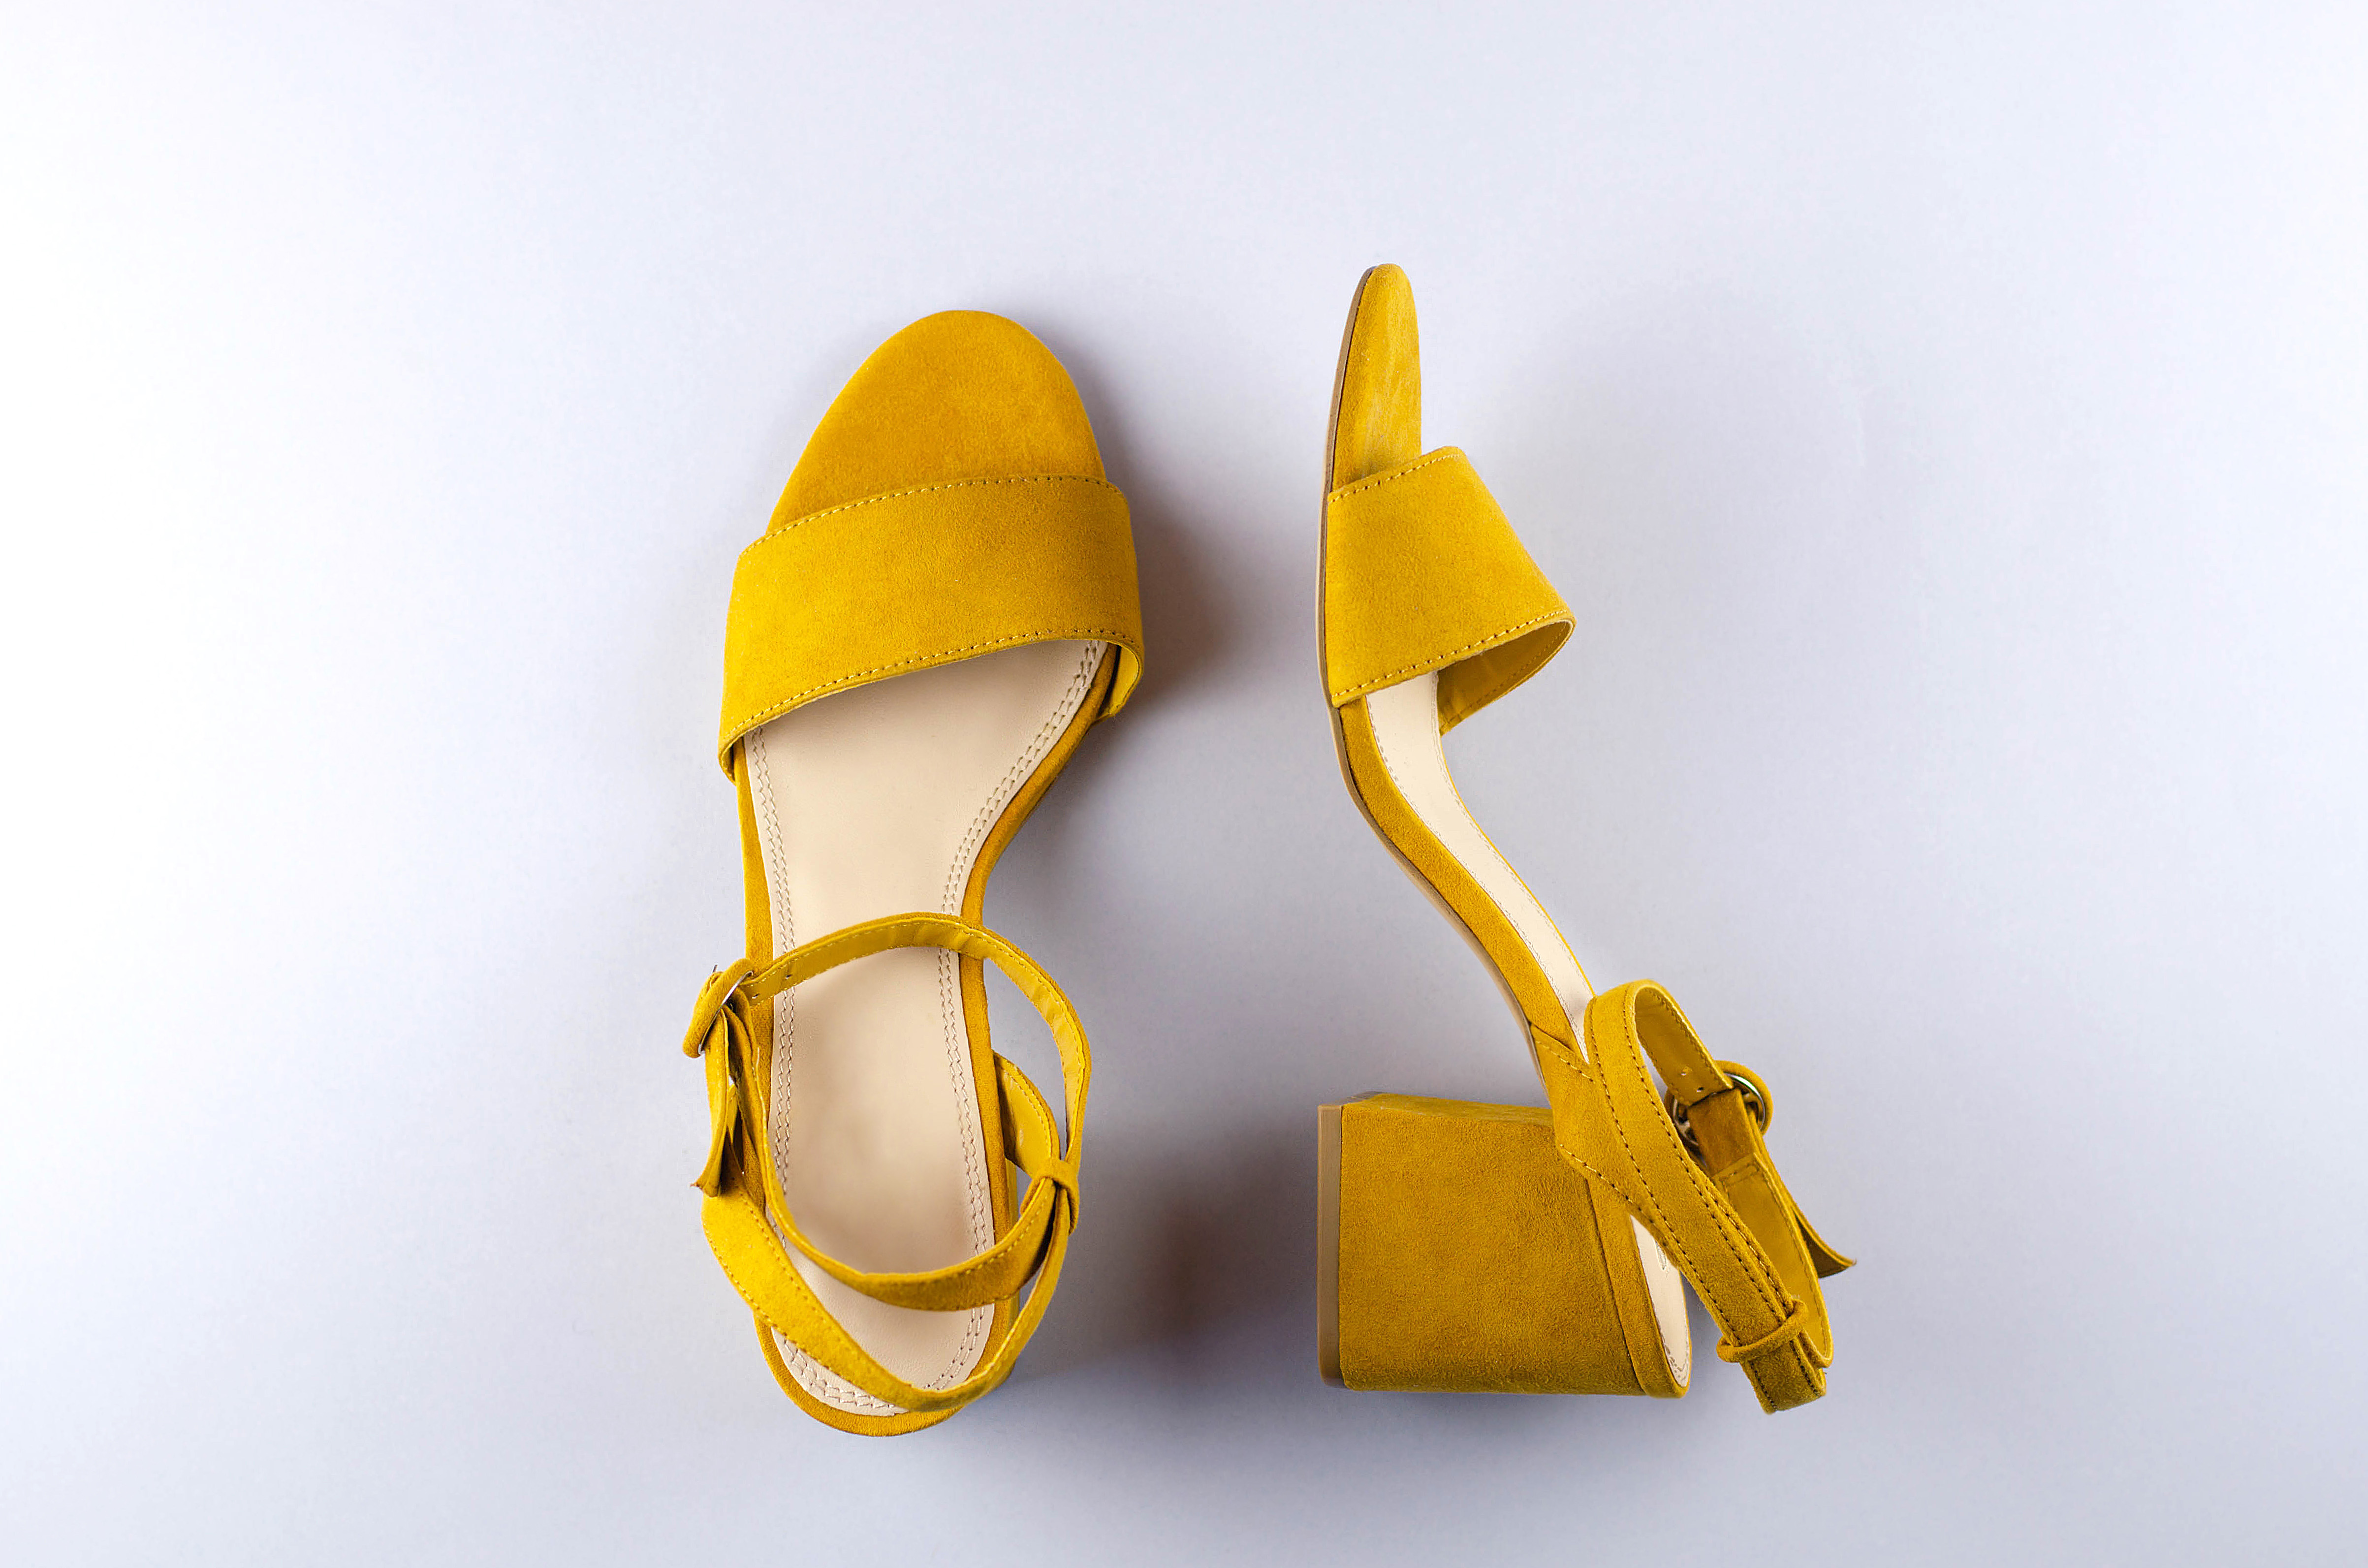 Two sandals mustard color gray background